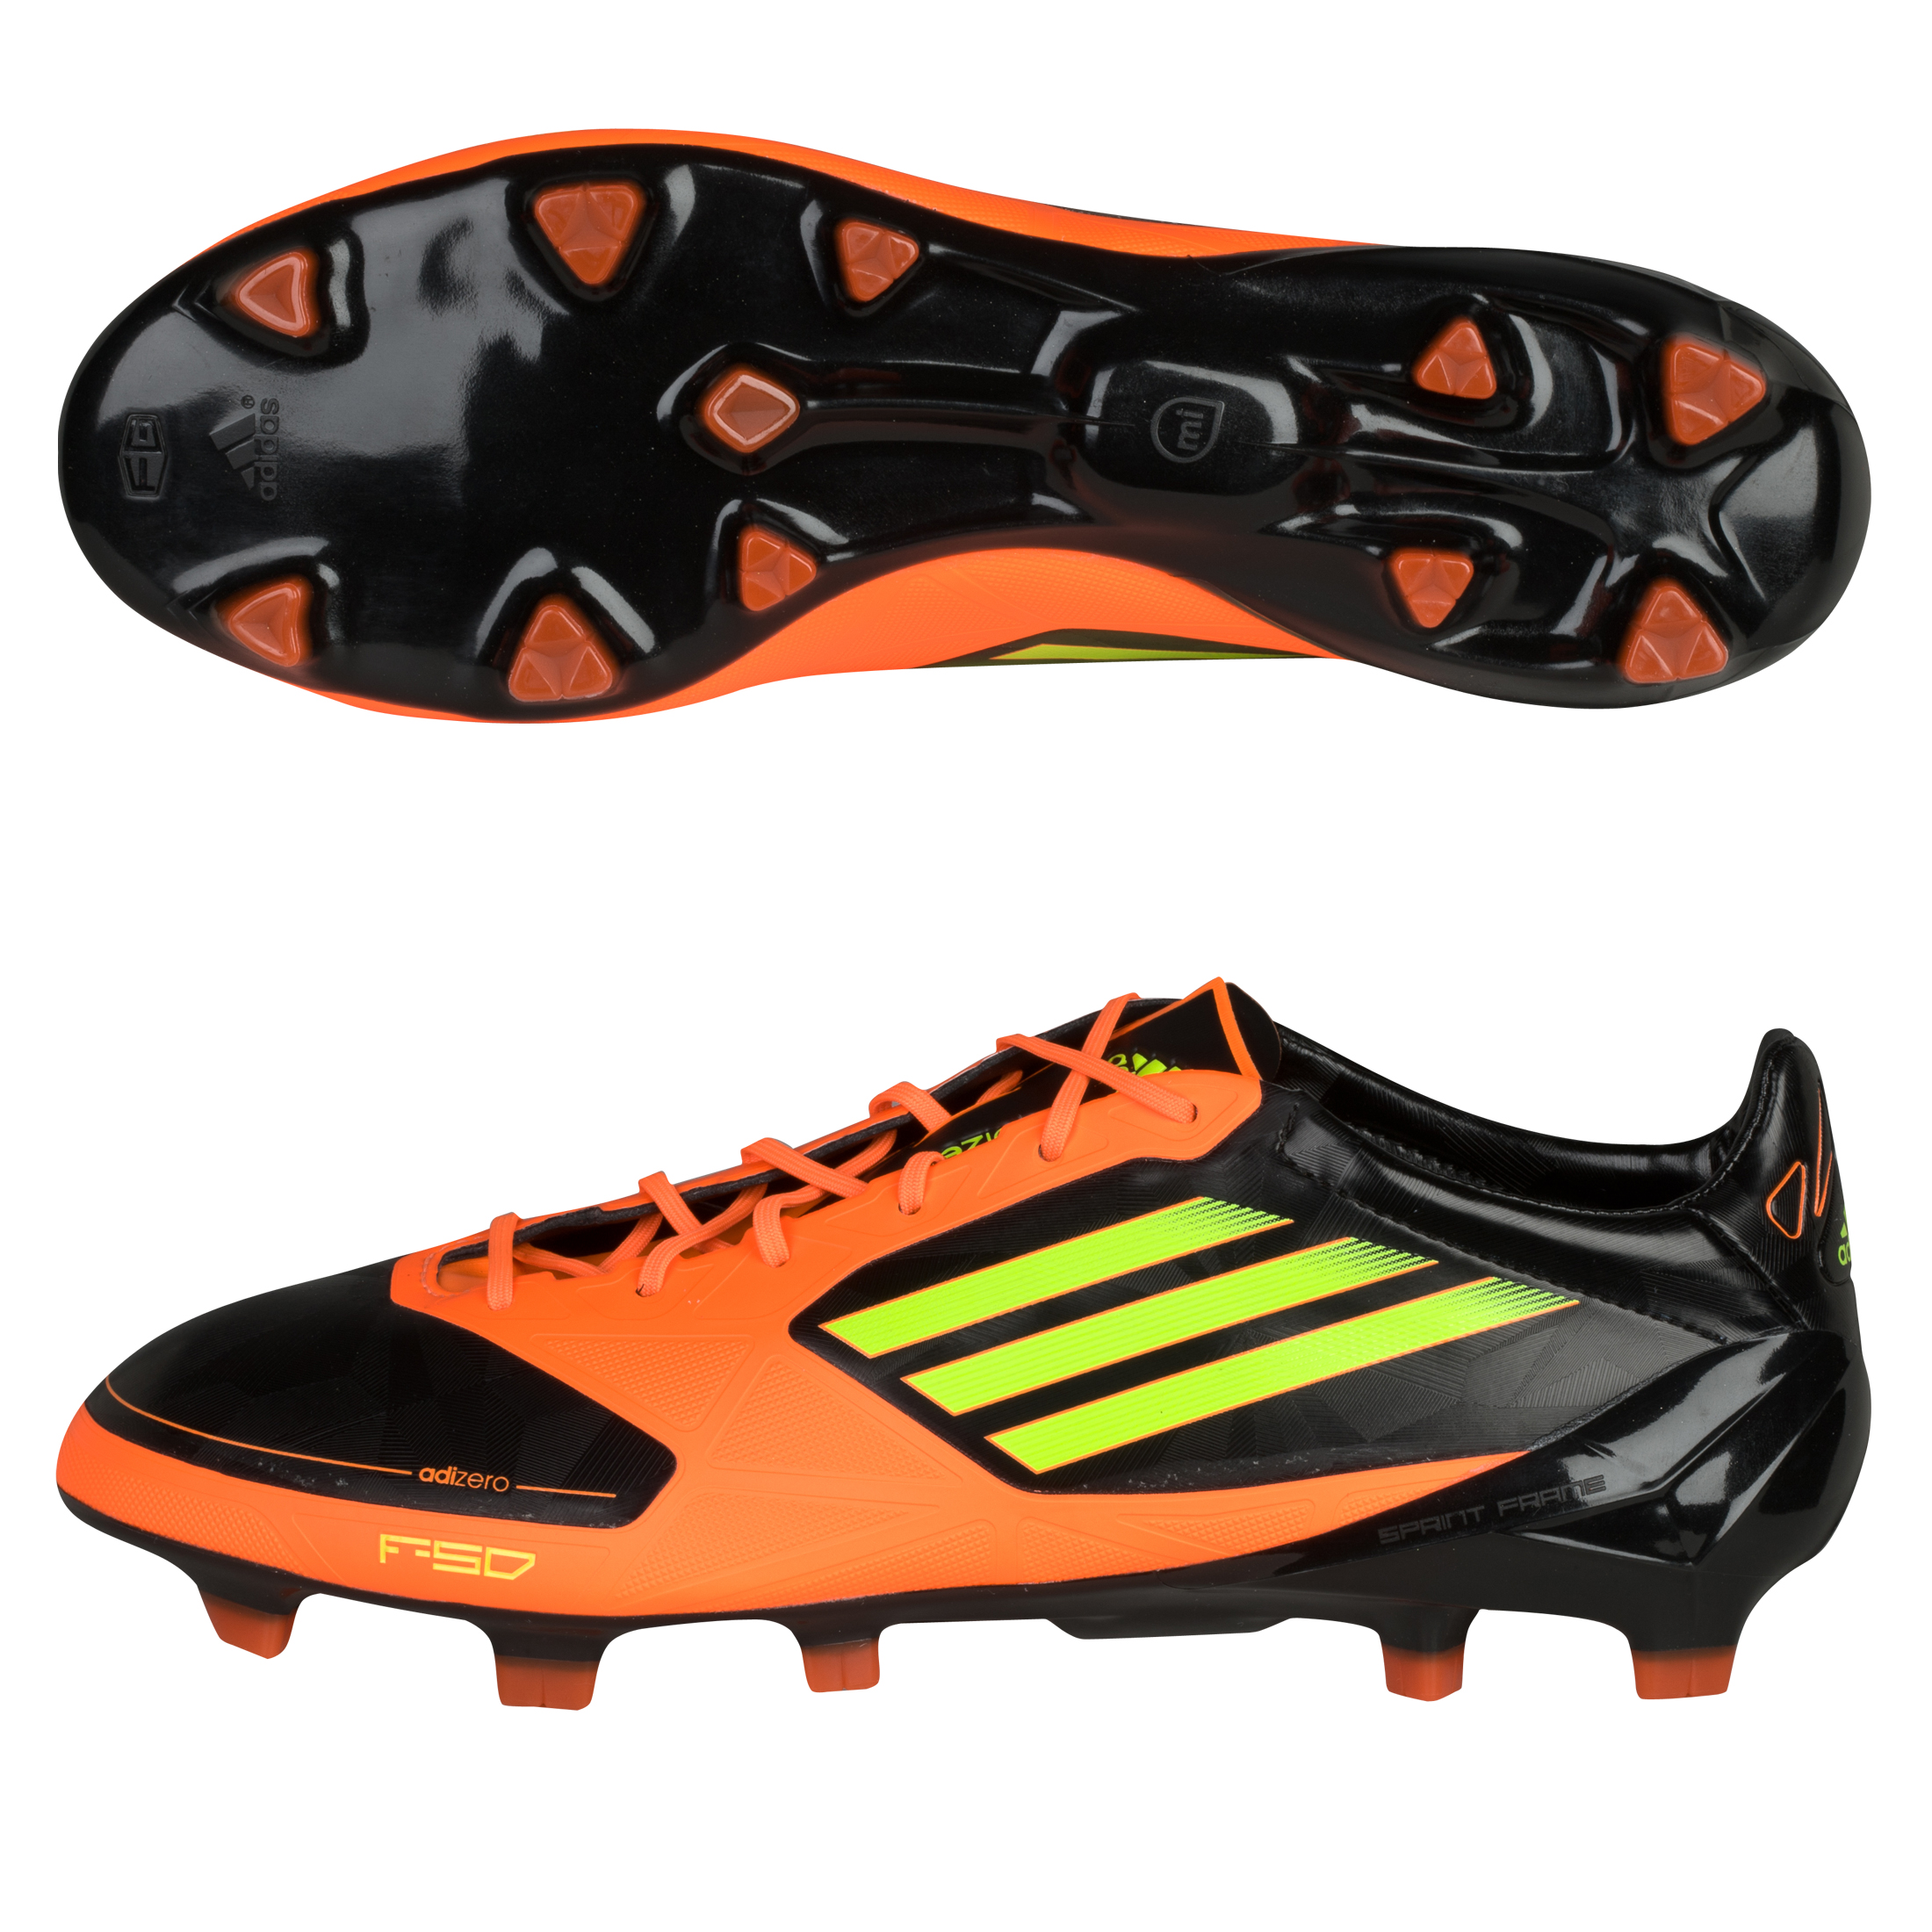 F50 adizero TRX FG Synthetic Black 1/Electricity/Warning